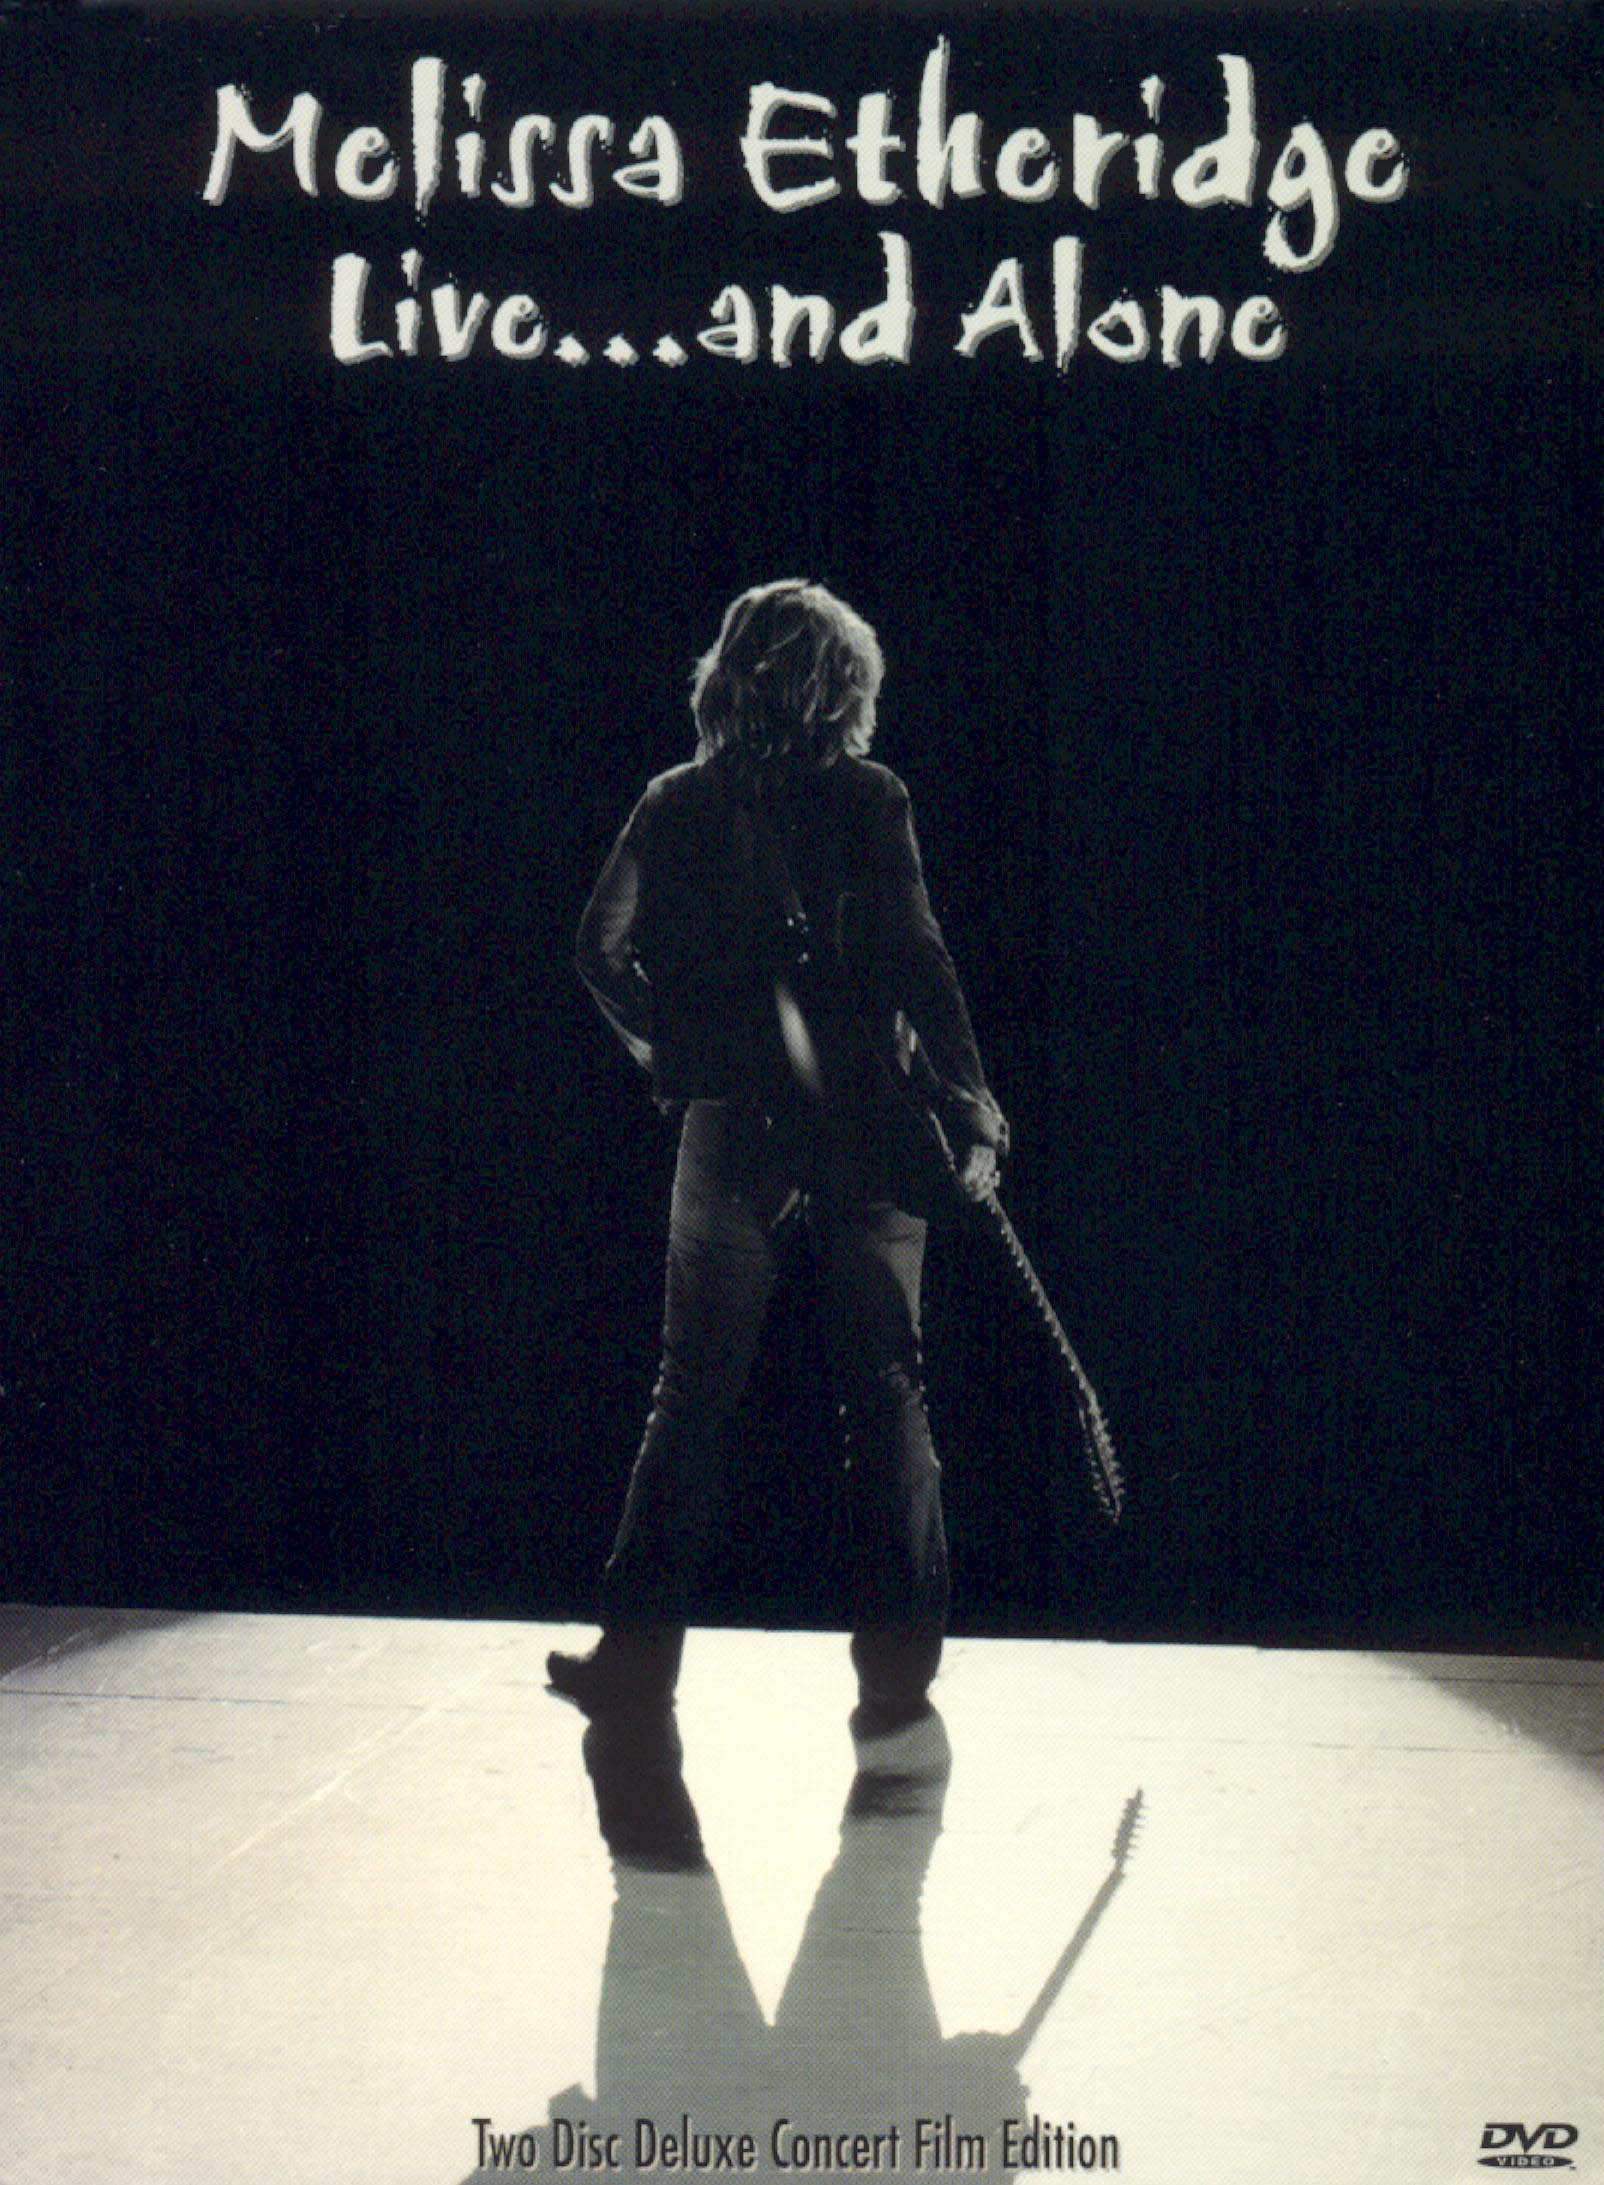 Melissa Etheridge: Live...and Alone